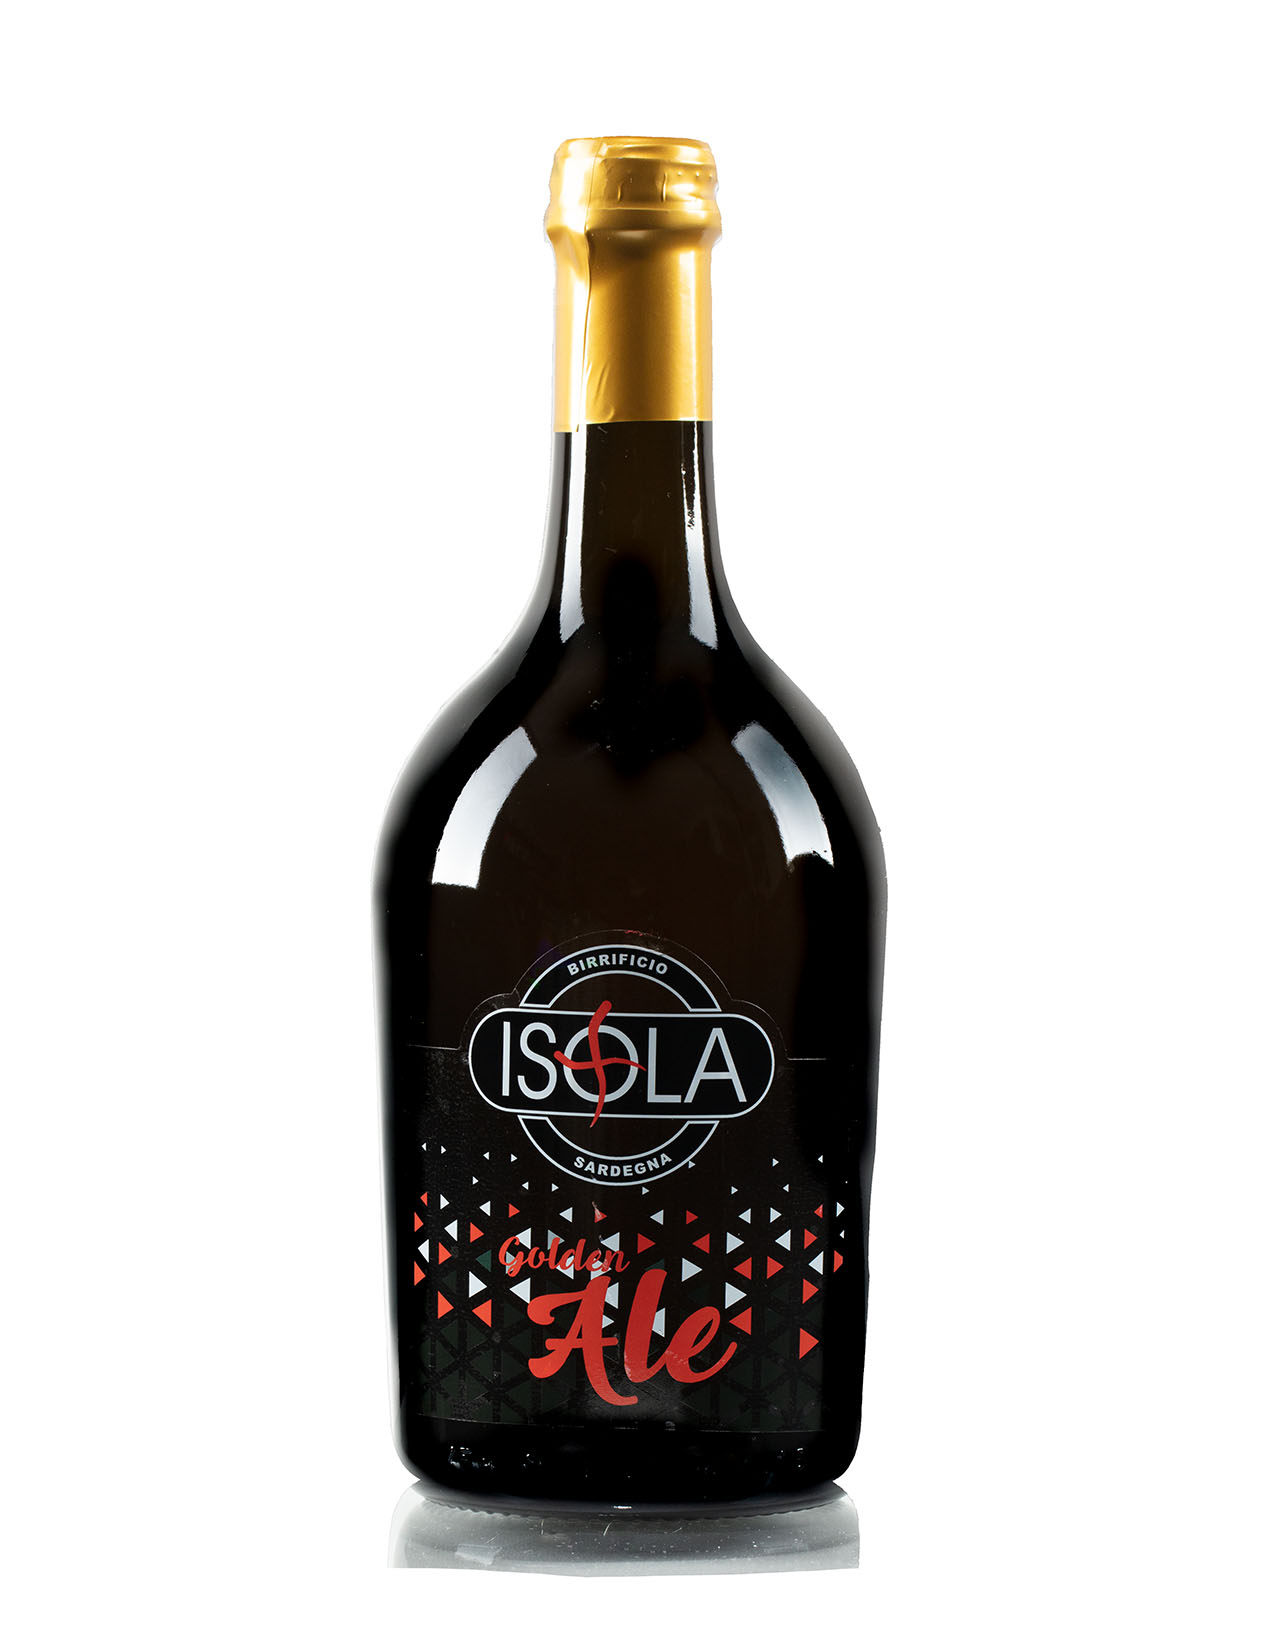 ISOLA GOLDEN ALE